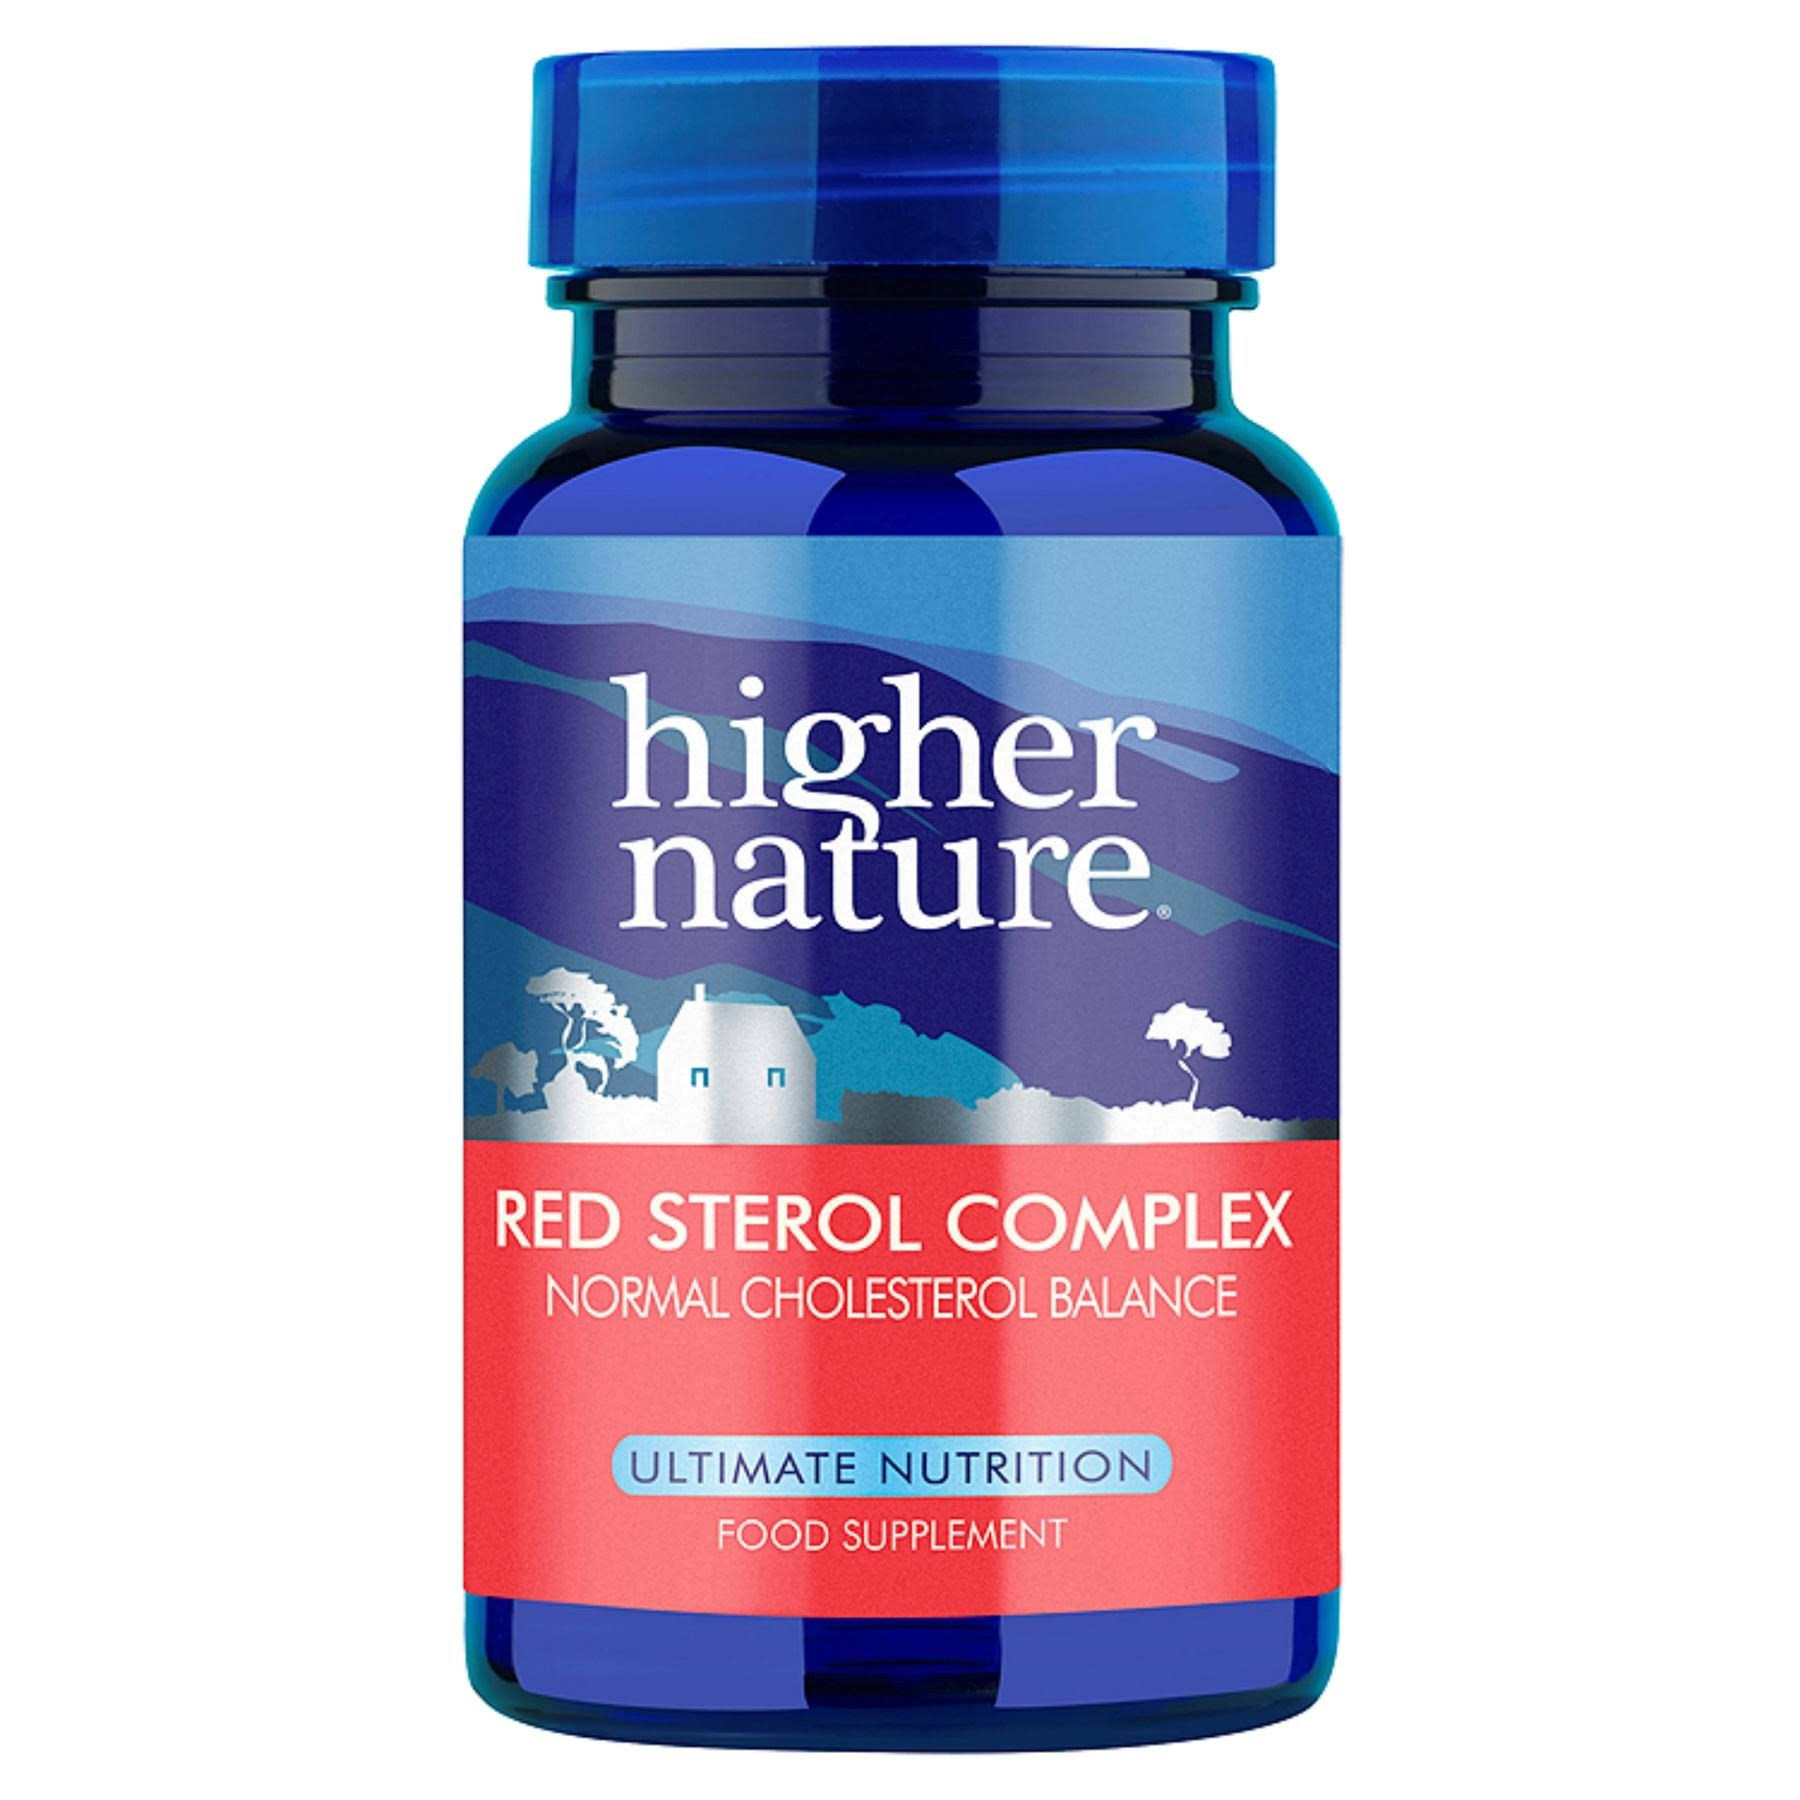 Higher Nature Red Sterol Complex Supplement - 90 Pack